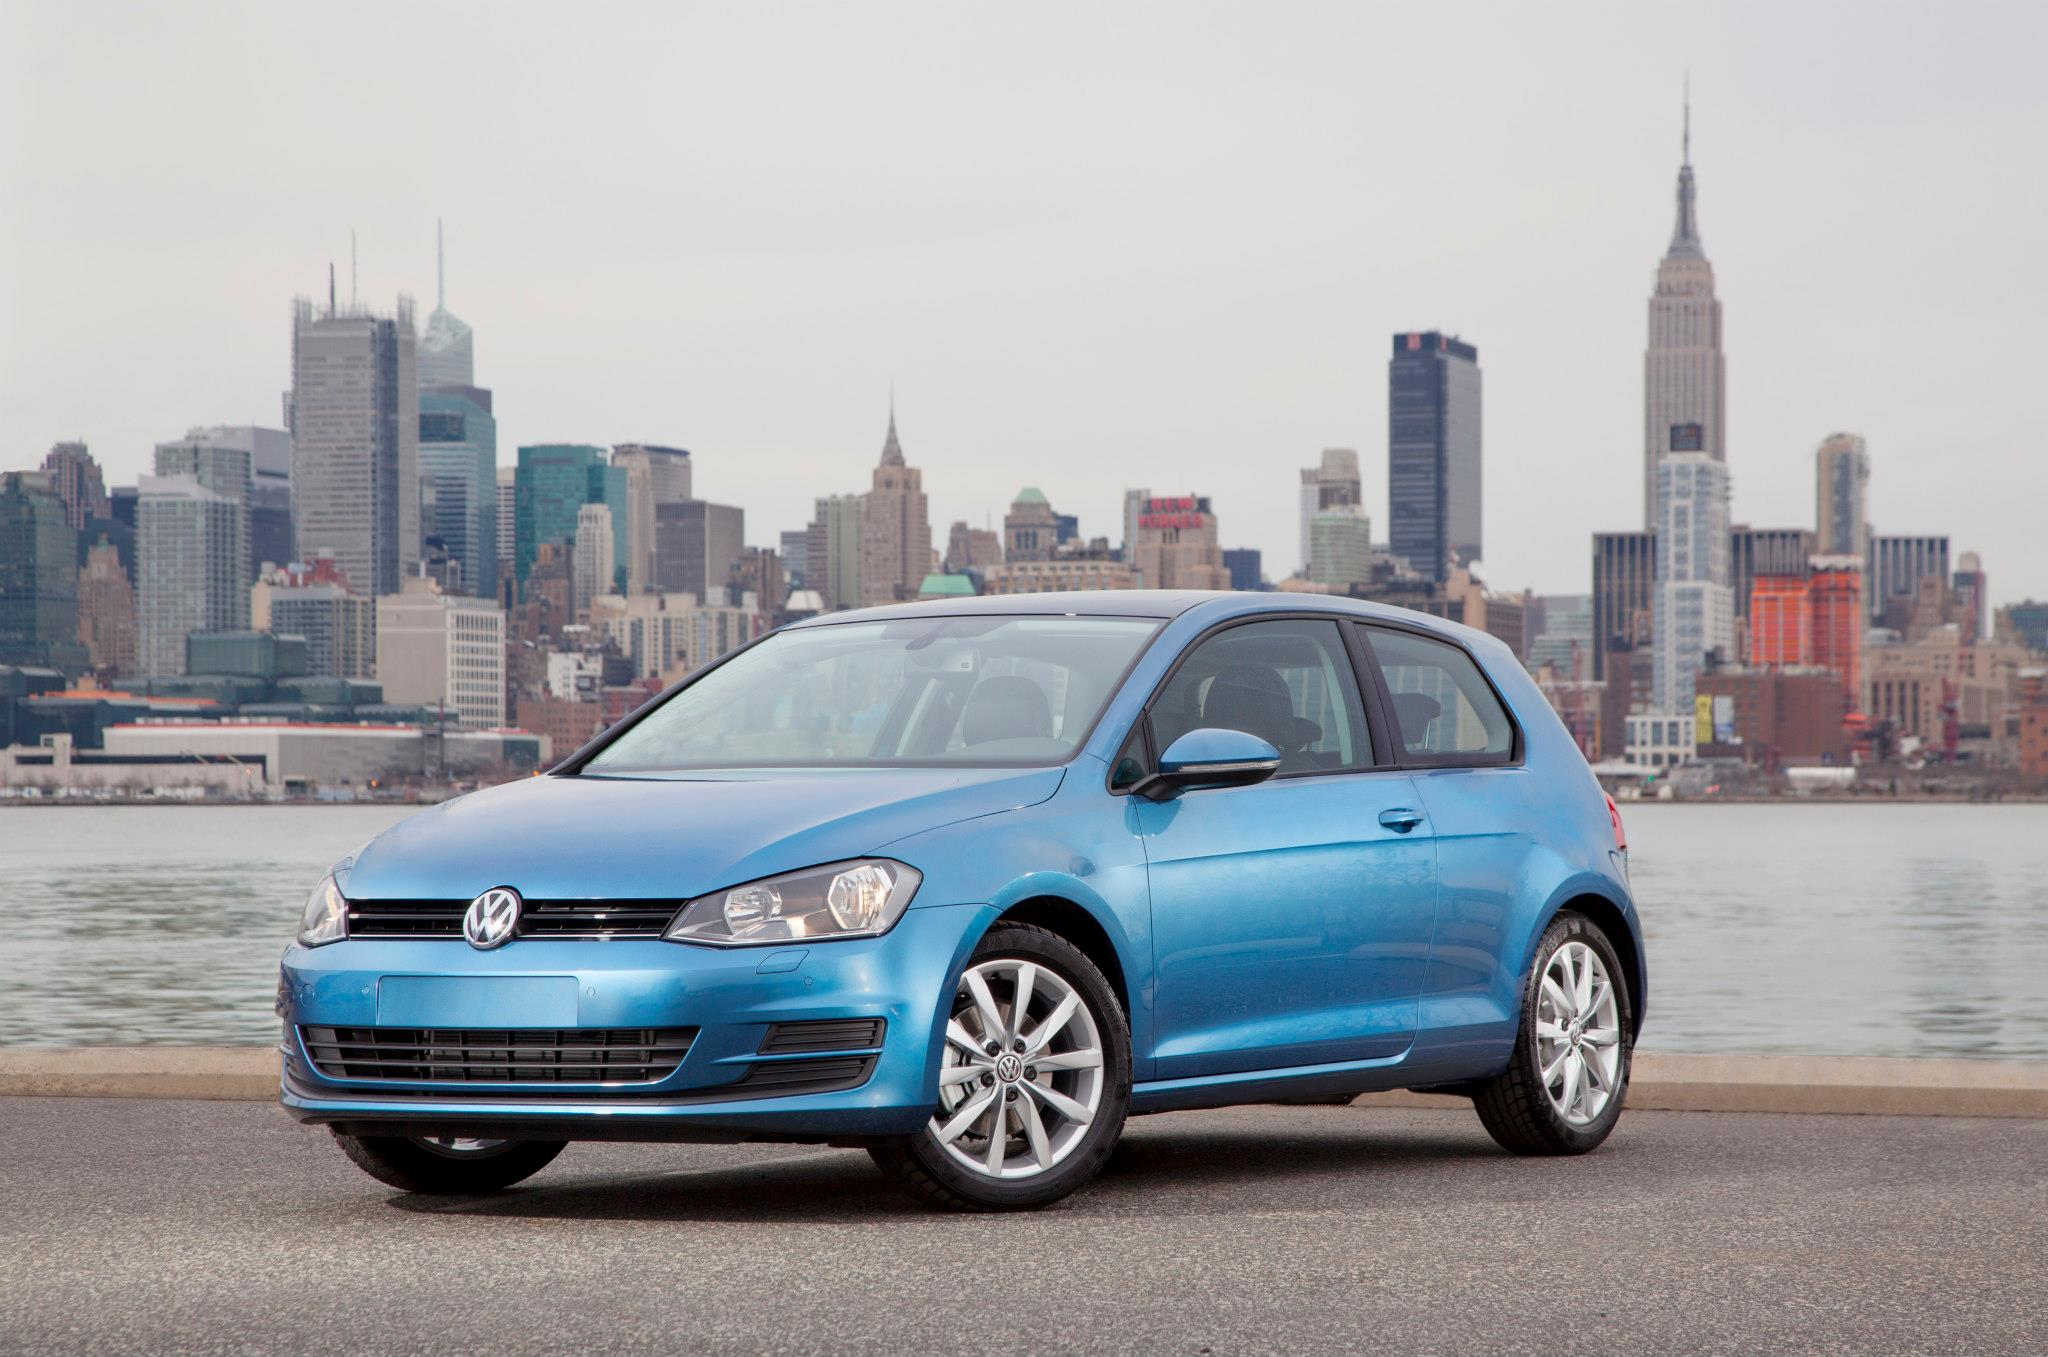 vw golf 7th generation 2015 update 4 23 14 volkswagen utah. Black Bedroom Furniture Sets. Home Design Ideas